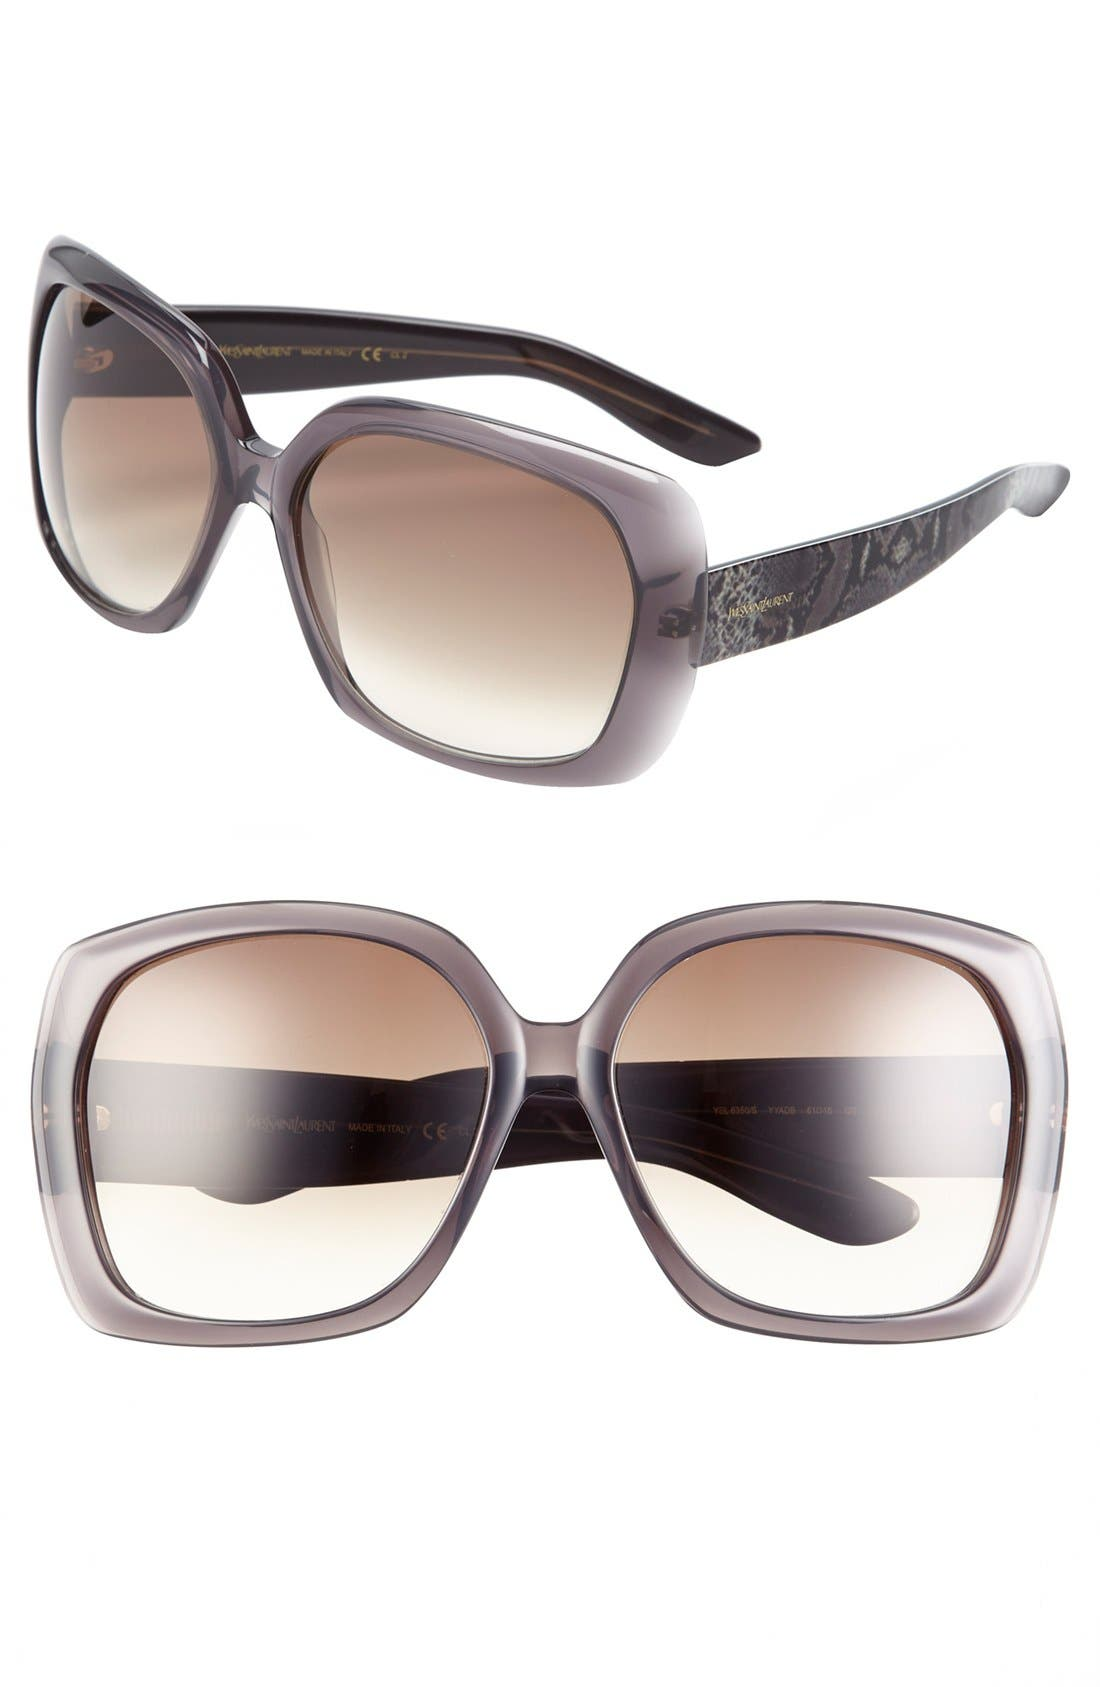 Main Image - Saint Laurent Oversized Sunglasses